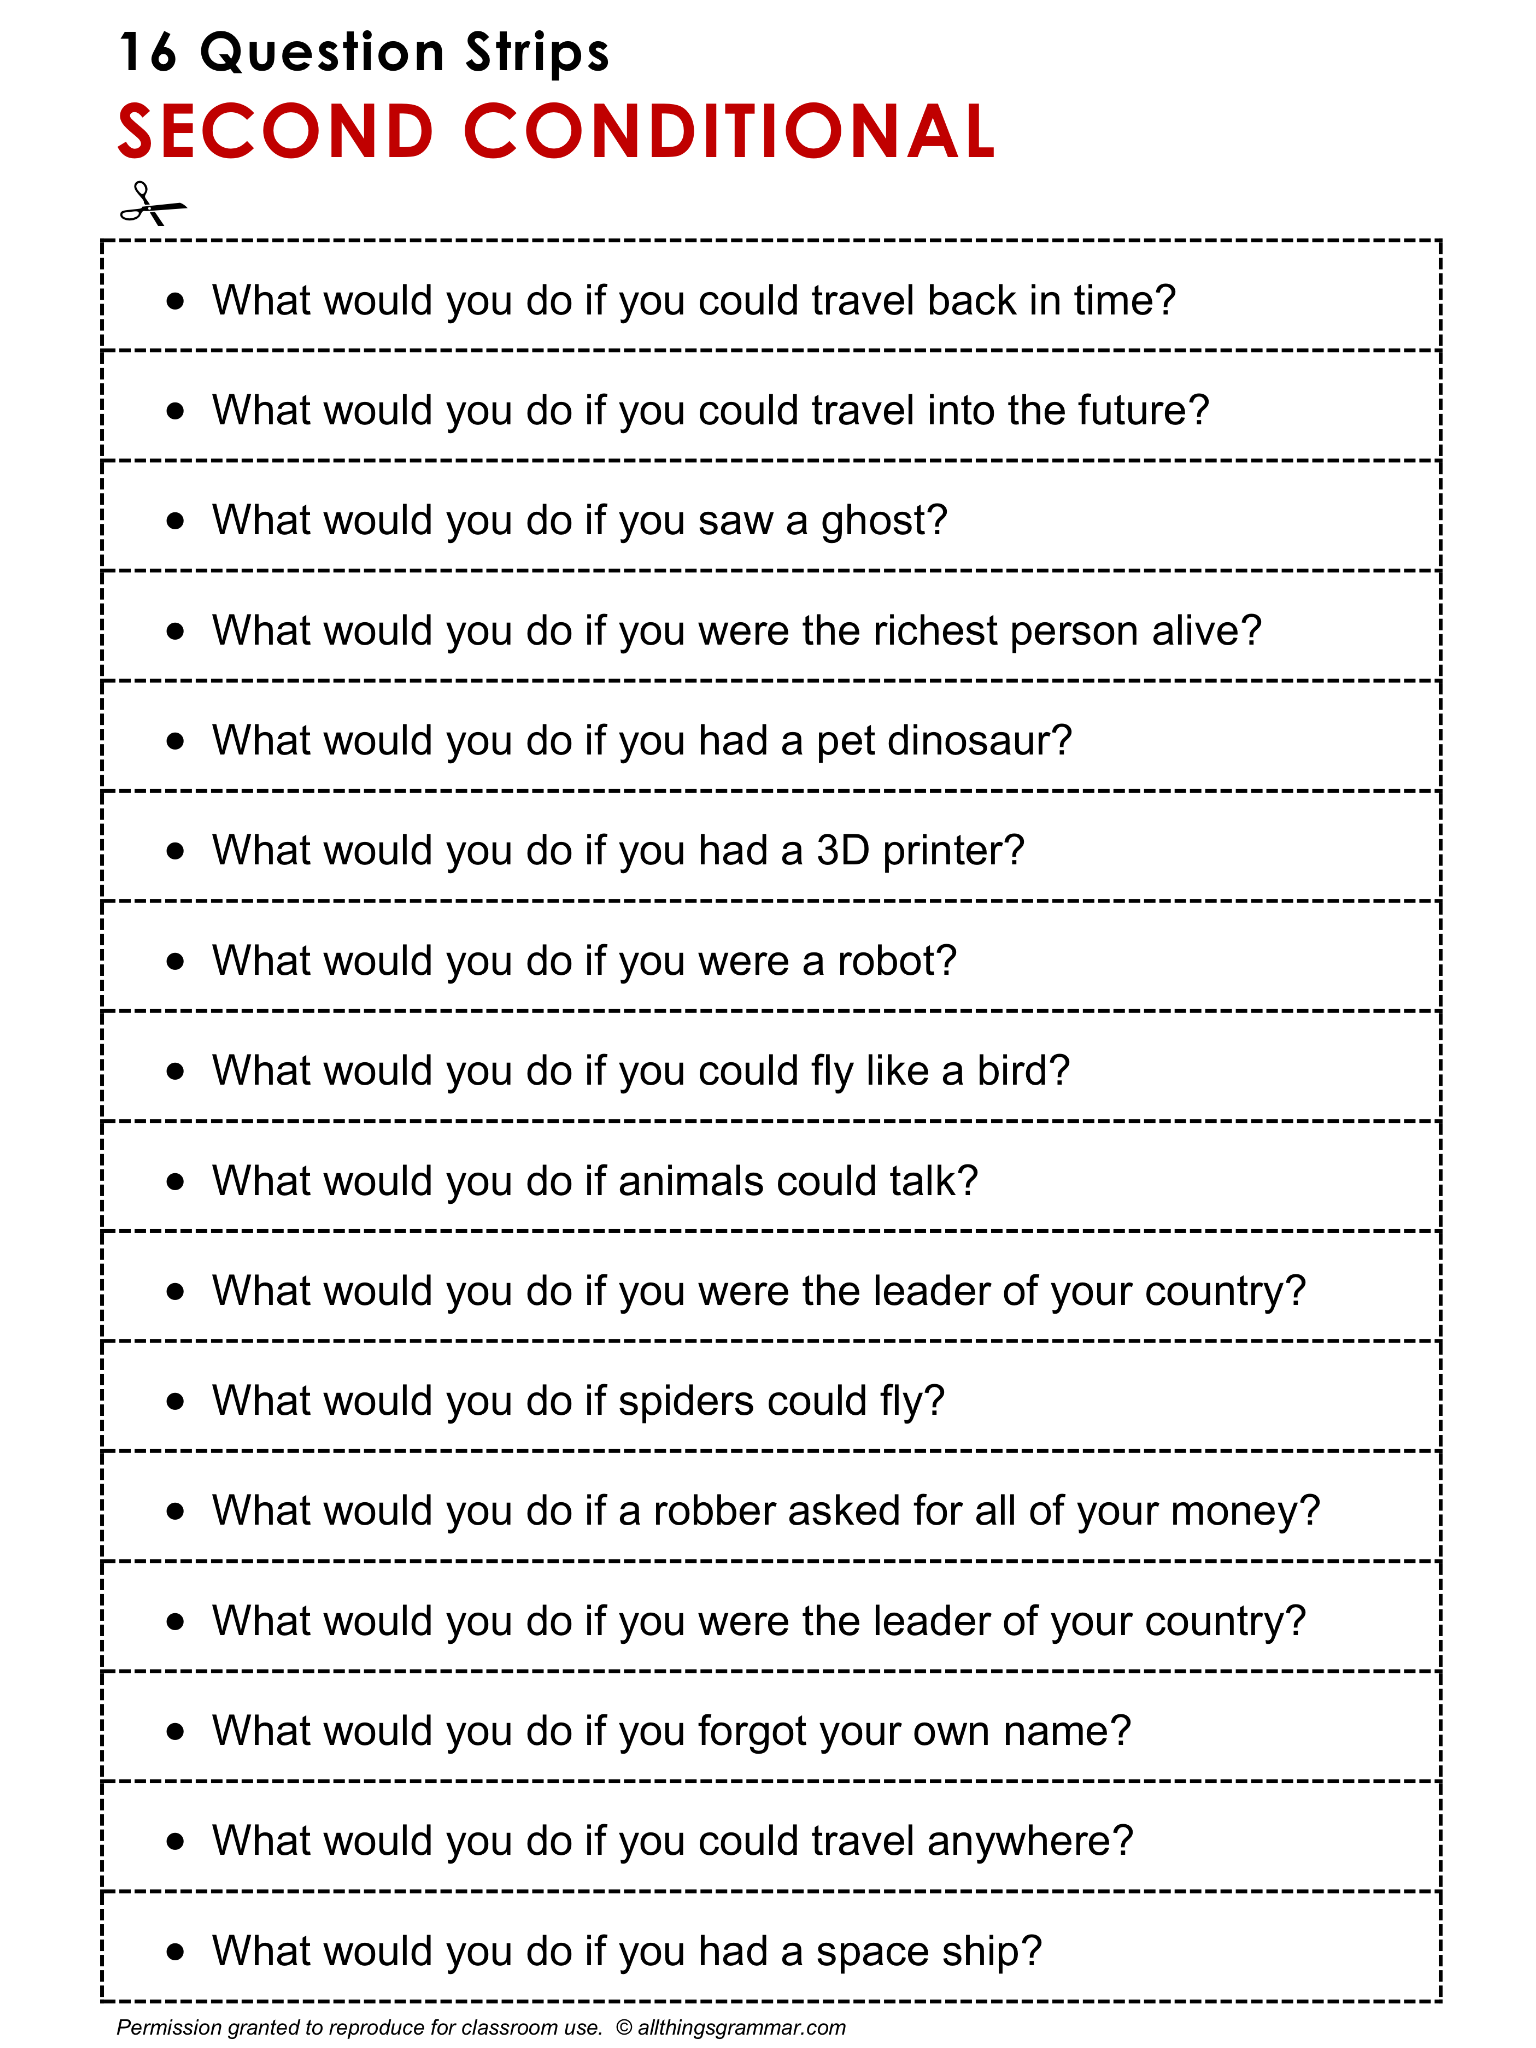 English Grammar Discussion Practice Second Conditional, 16 Question Strips. http://www.allthingsgrammar.com/second-conditional.html